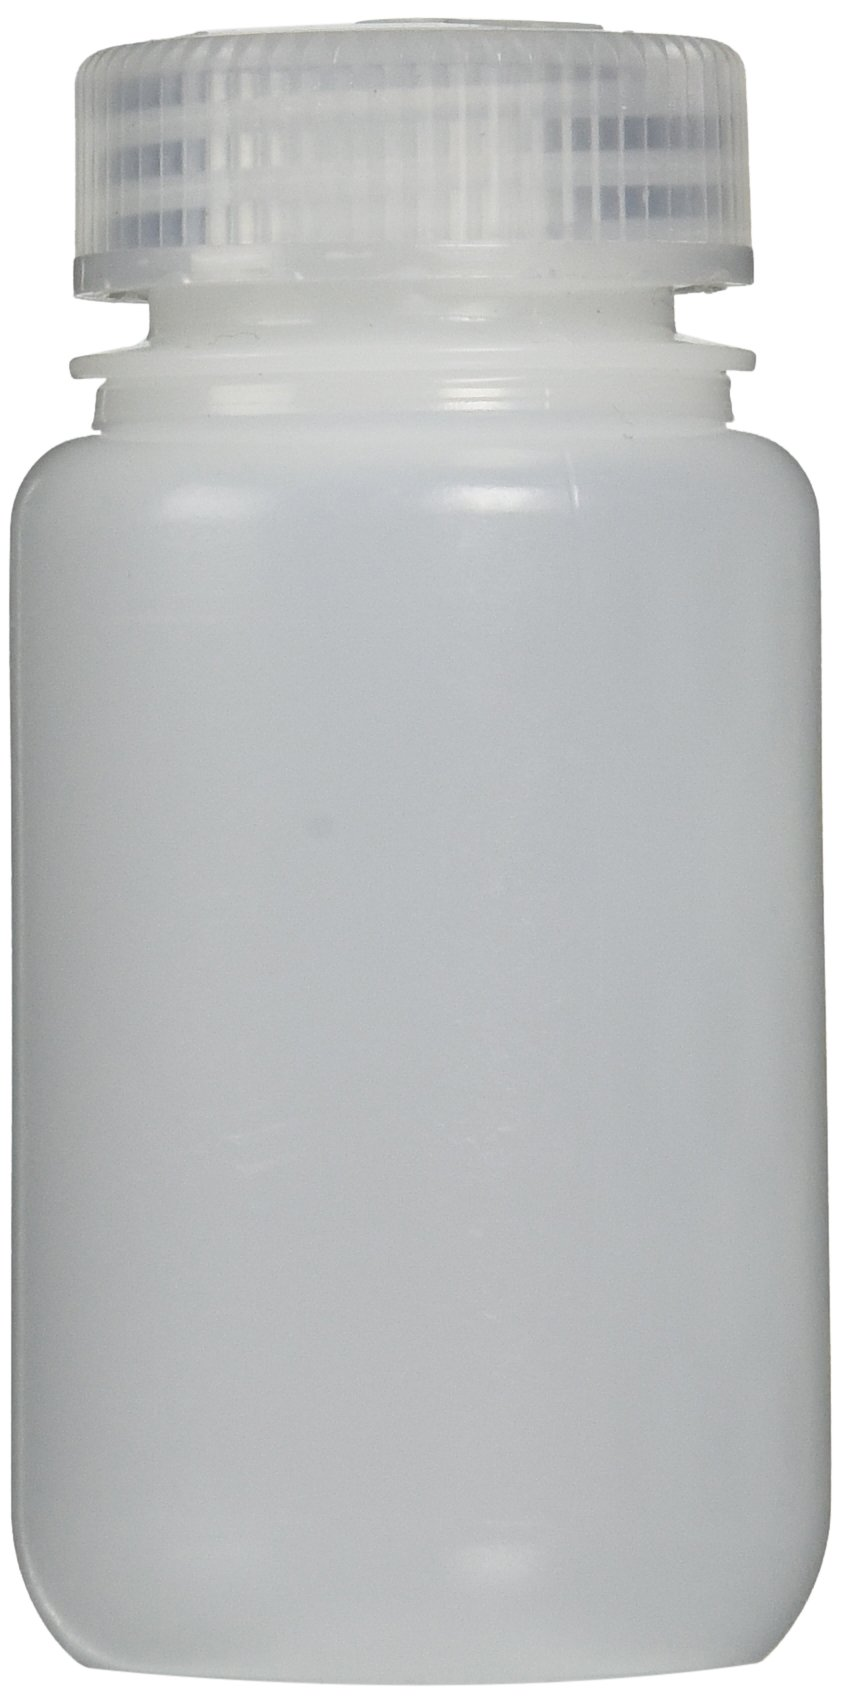 Nalgene HDPE Wide Mouth Round Container, 4 Oz